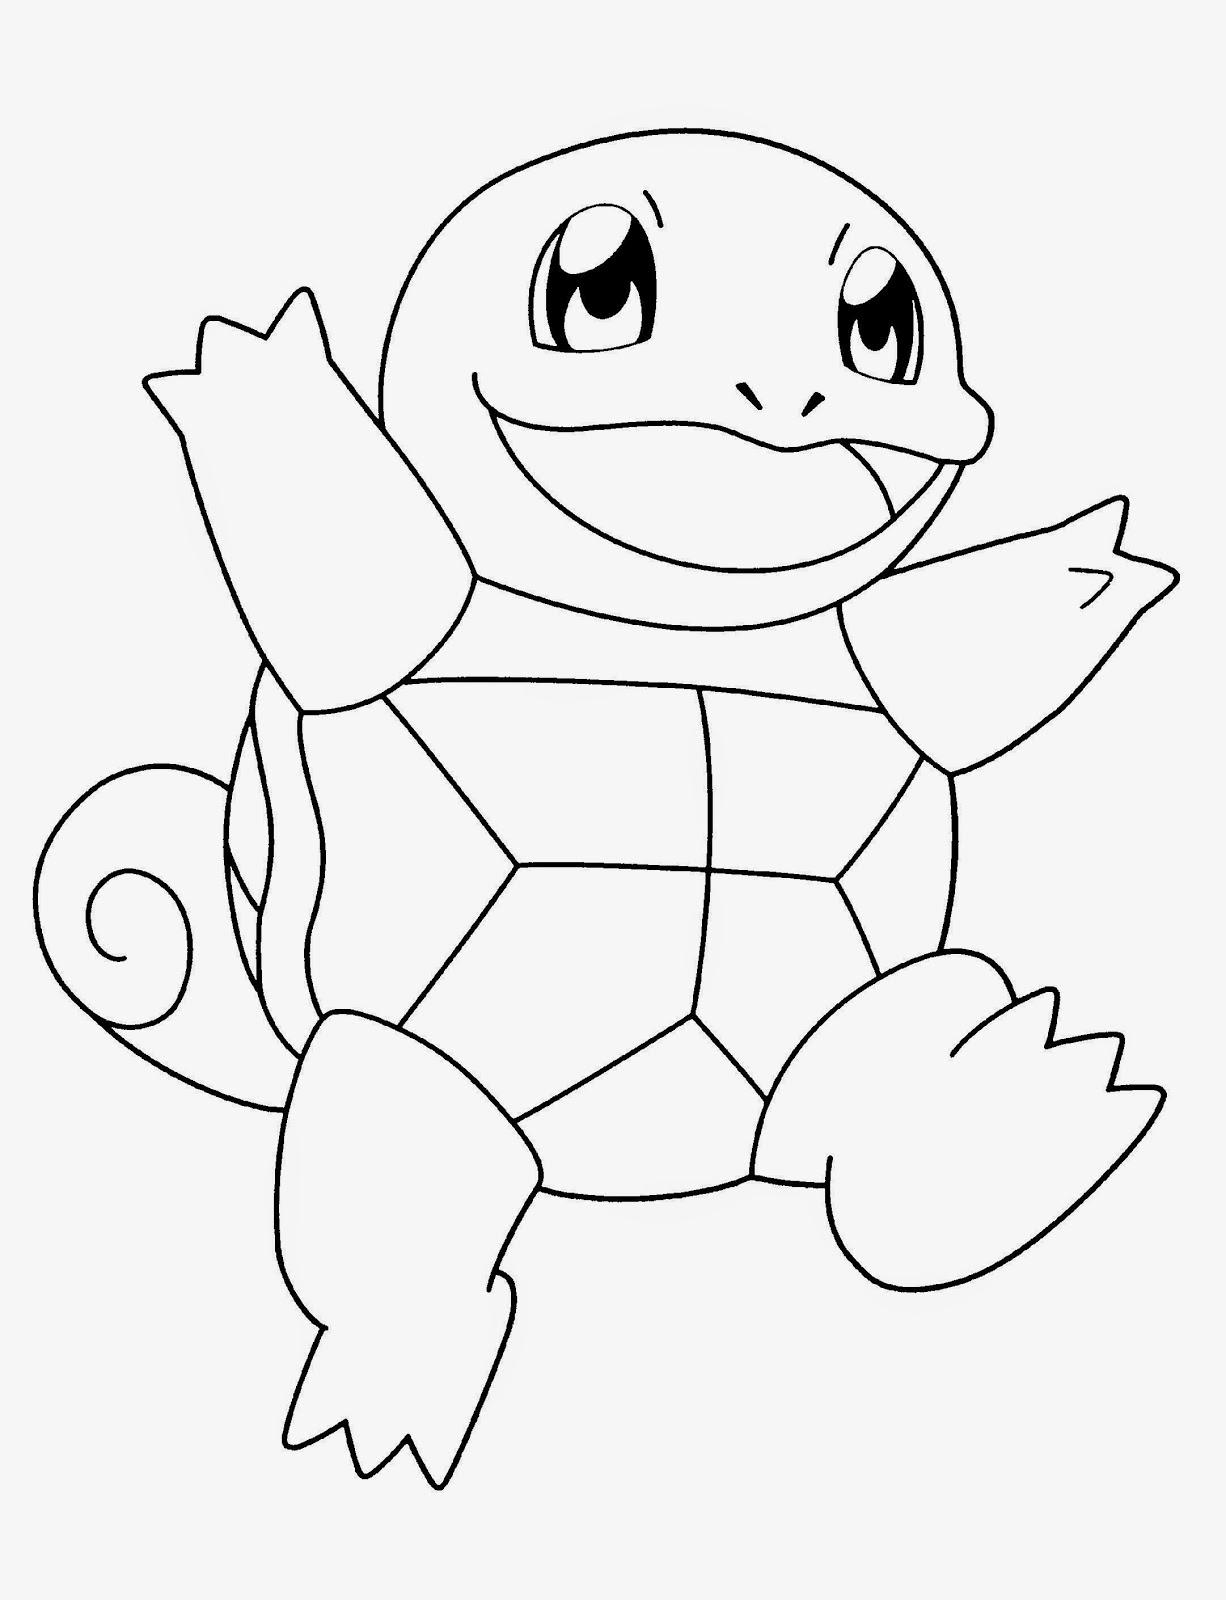 Pokemon coloring pages free coloring sheet for Photo to coloring page